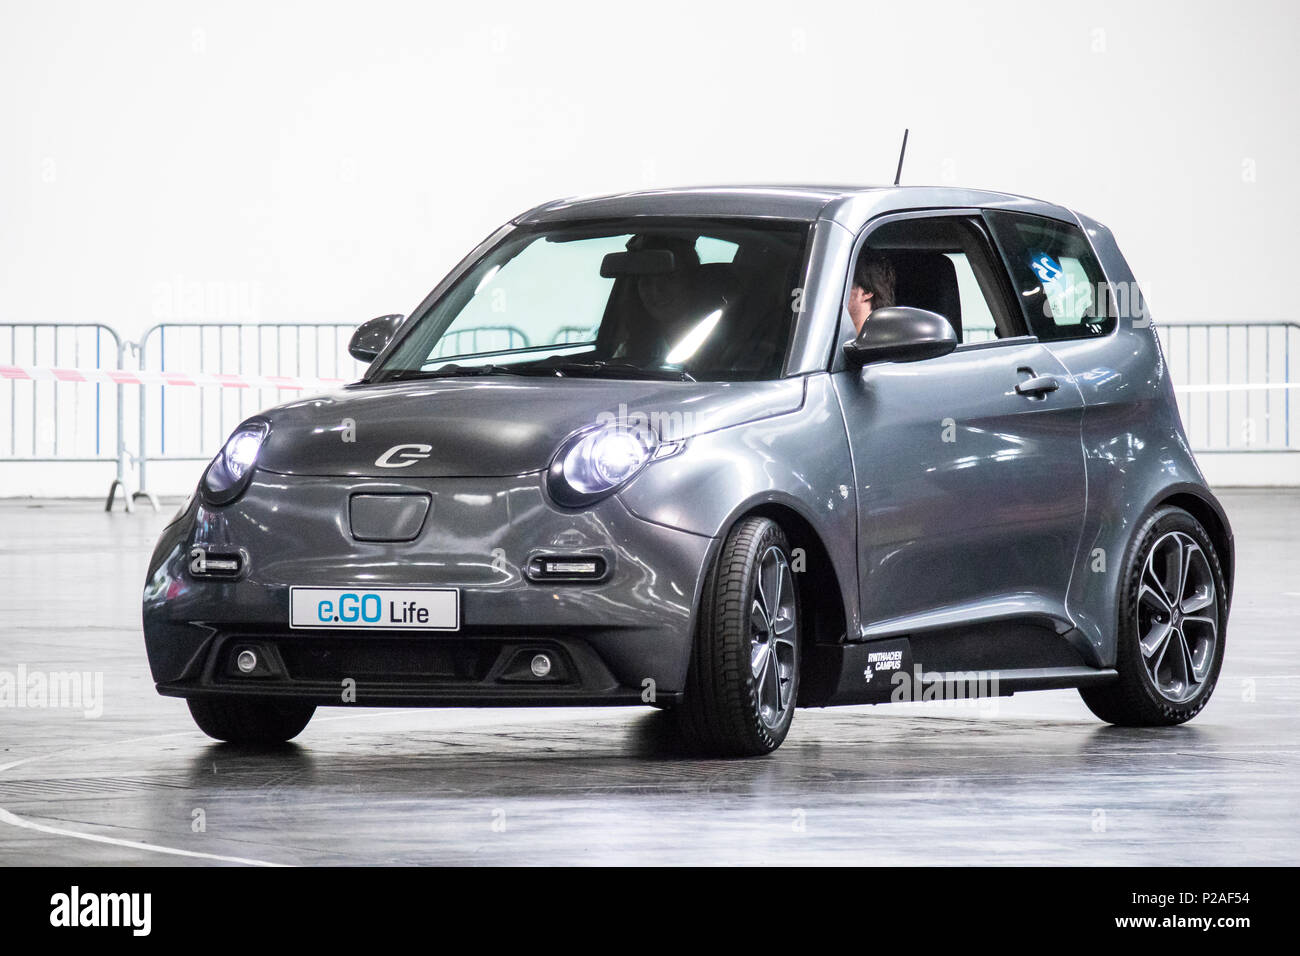 Hanover, Germany. 13th June, 2018. e.GO Life, electric car by e.GO Mobile AG, Germany. At CEBIT 2018, international computer expo and Europe's Business Festival for Innovation and Digitization: Credit: Christian Lademann / Alamy Live News Stock Photo